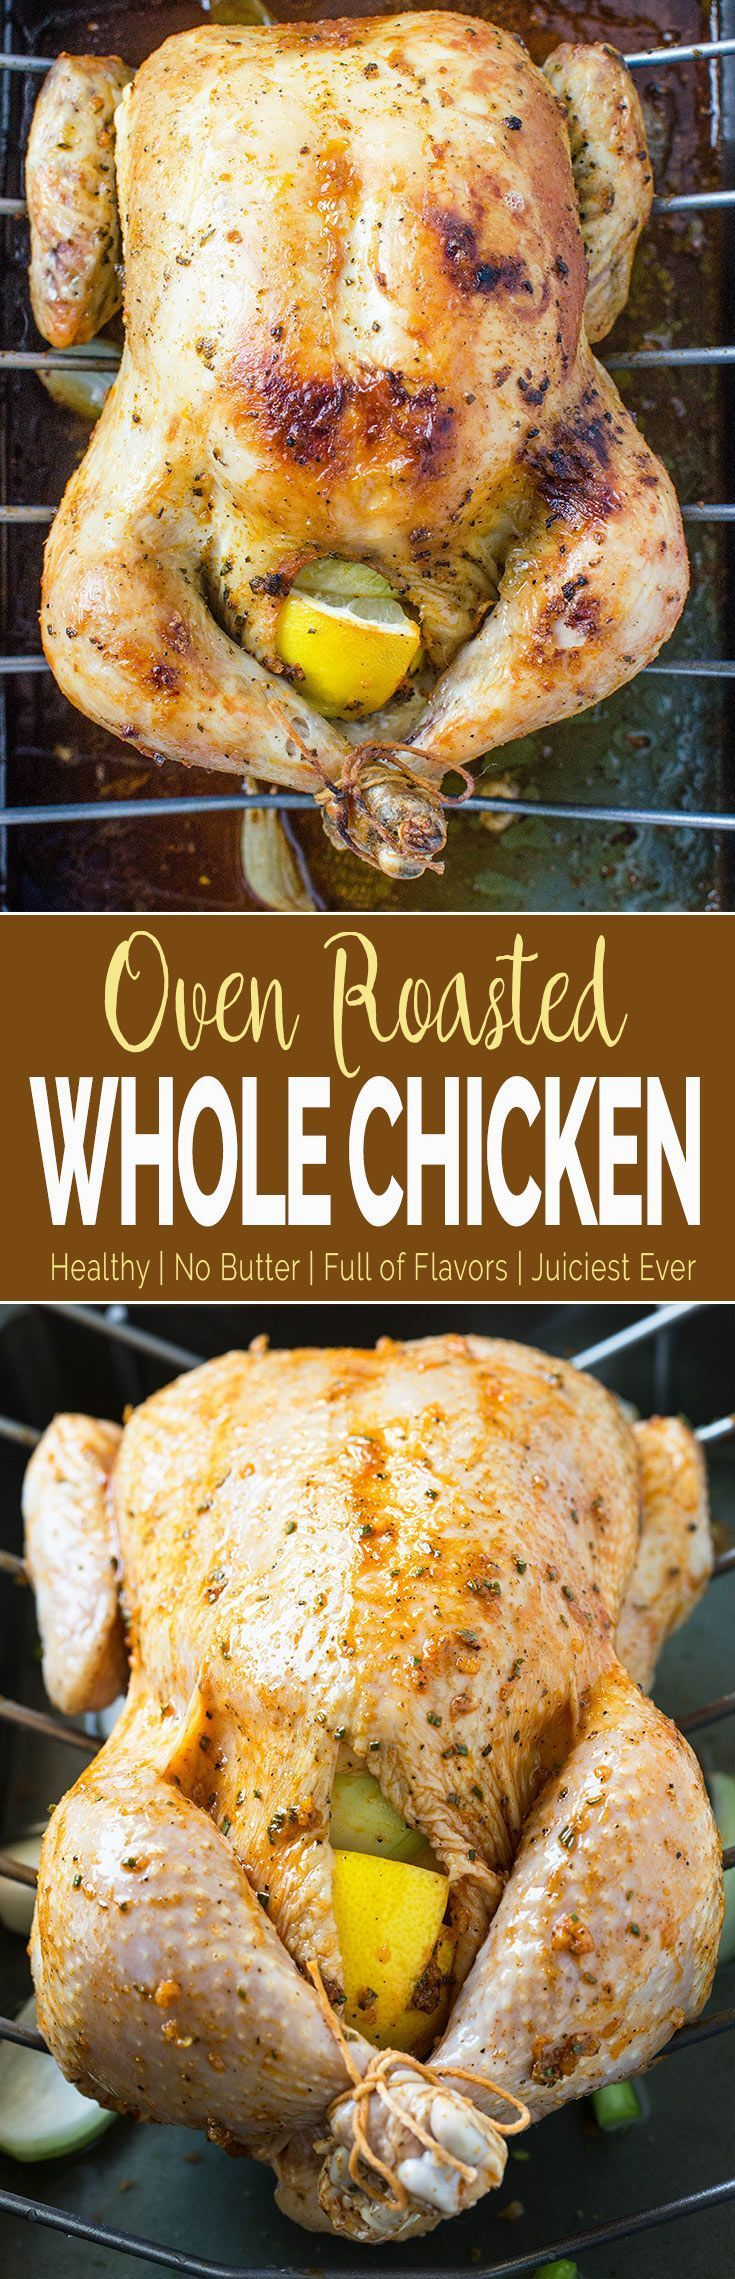 Learn to make perfect super juicy garlic & herb roasted whole chicken in the oven. Quick preparation & tons of flavors with delicious gravy prepared using pandrippings.   via @watchwhatueat